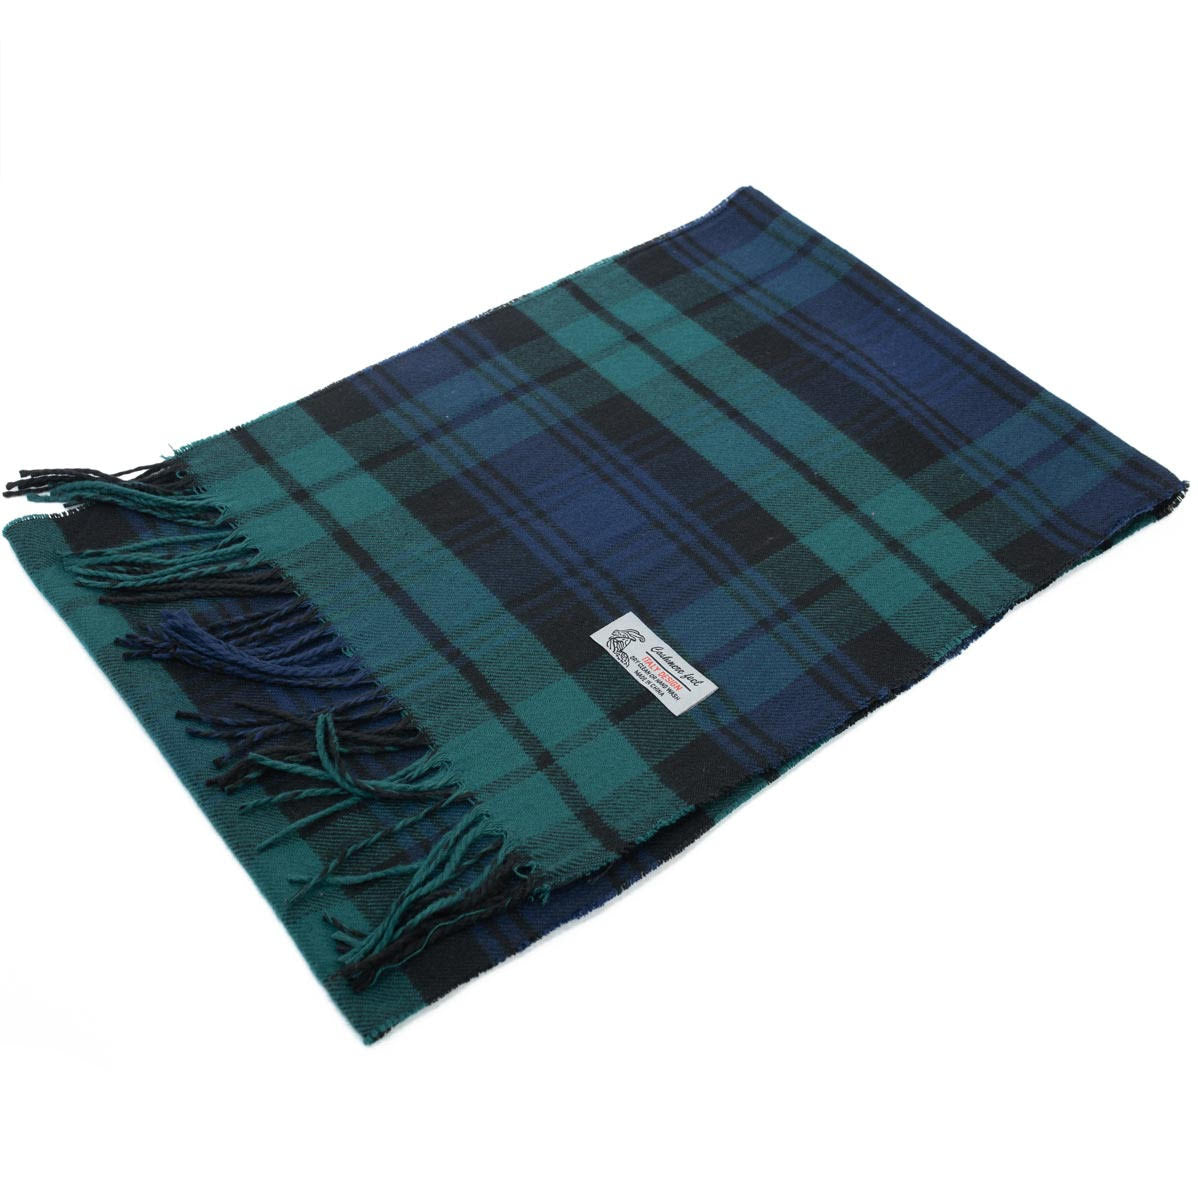 Cashmere Feel Scarf FW98 Navy/Teal